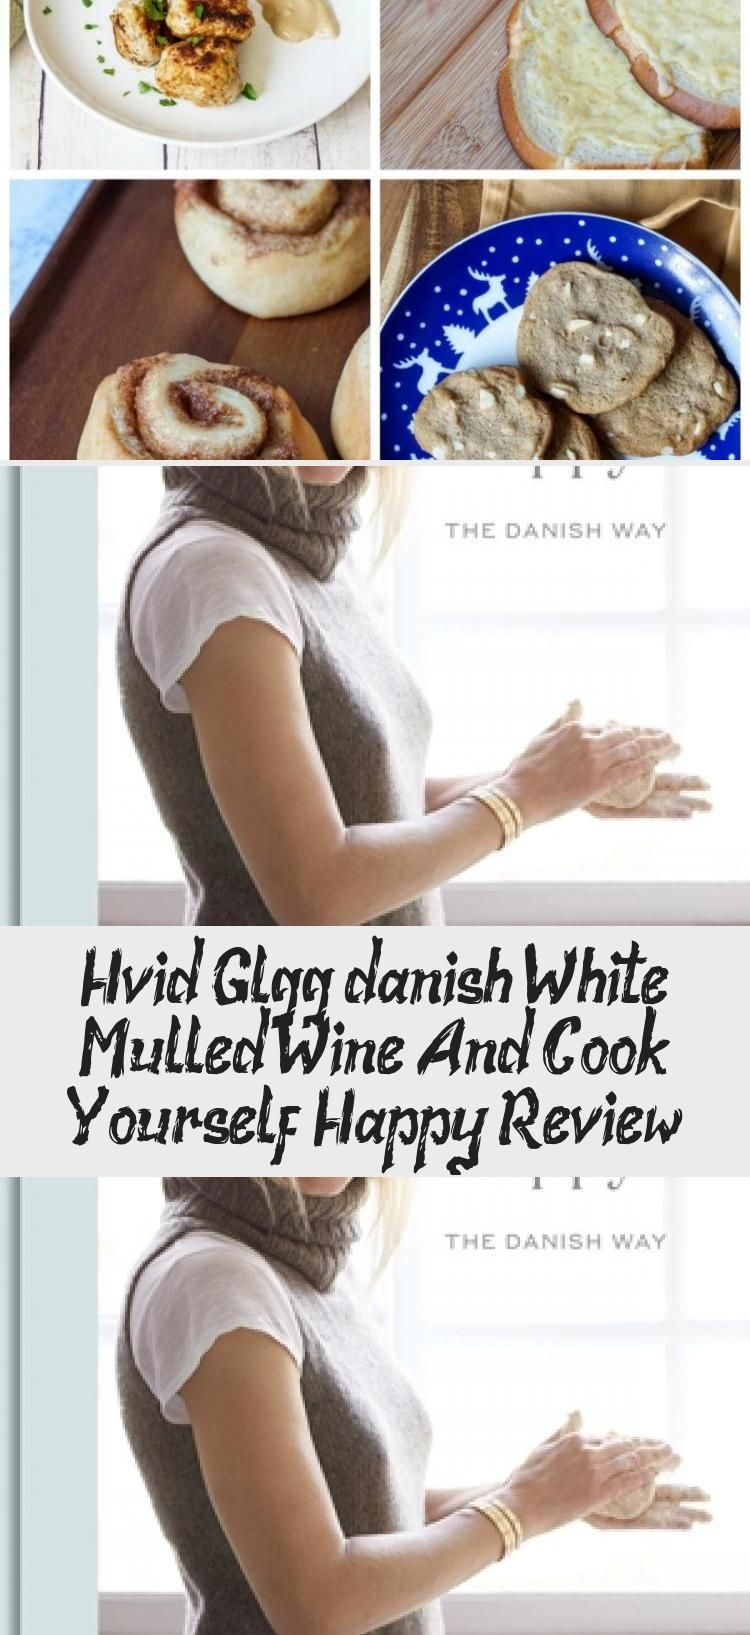 Hvid Gløgg (Danish White Mulled Wine) and Cook Yourself Happy Review - Tara's Multicultural Table  #ad #recipe #hvidgløgg #gløgg #glogg #wine #whitewine #Danish #Denmark #winter #holiday #yummywinterrecipes